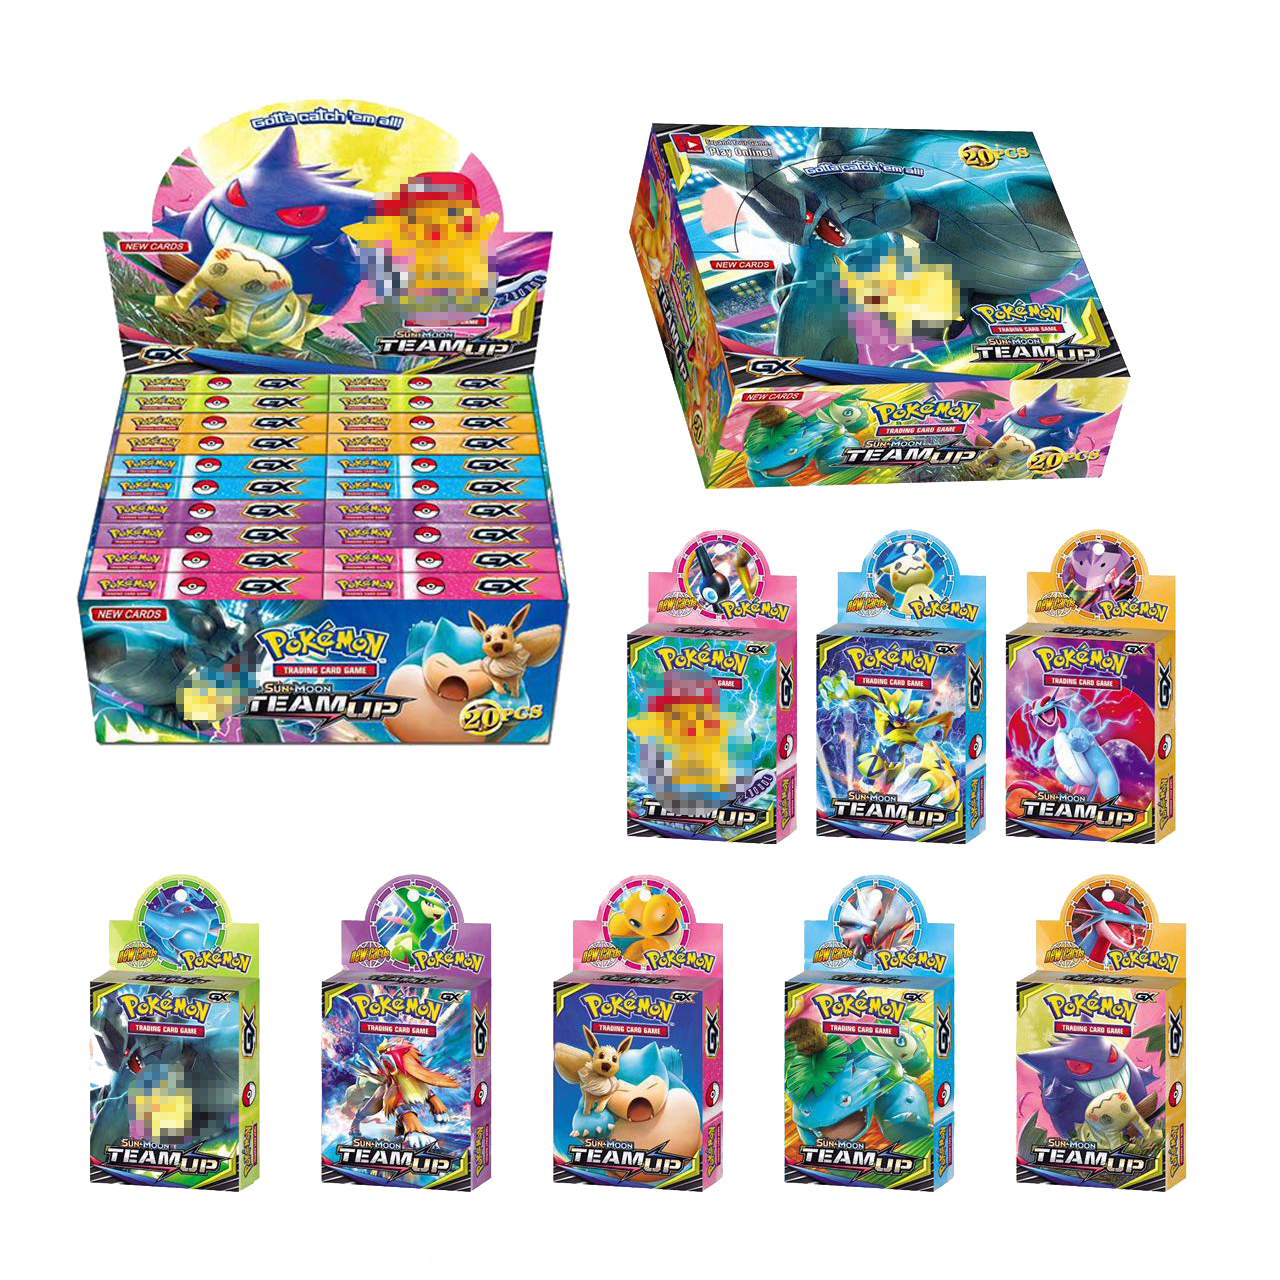 TAKARA TOMY Pokemon 33PCS GX EX MEGA Flash Card 3D Version Sword Shield Sun Moon Card Collectible For Kids Christmas Gifts